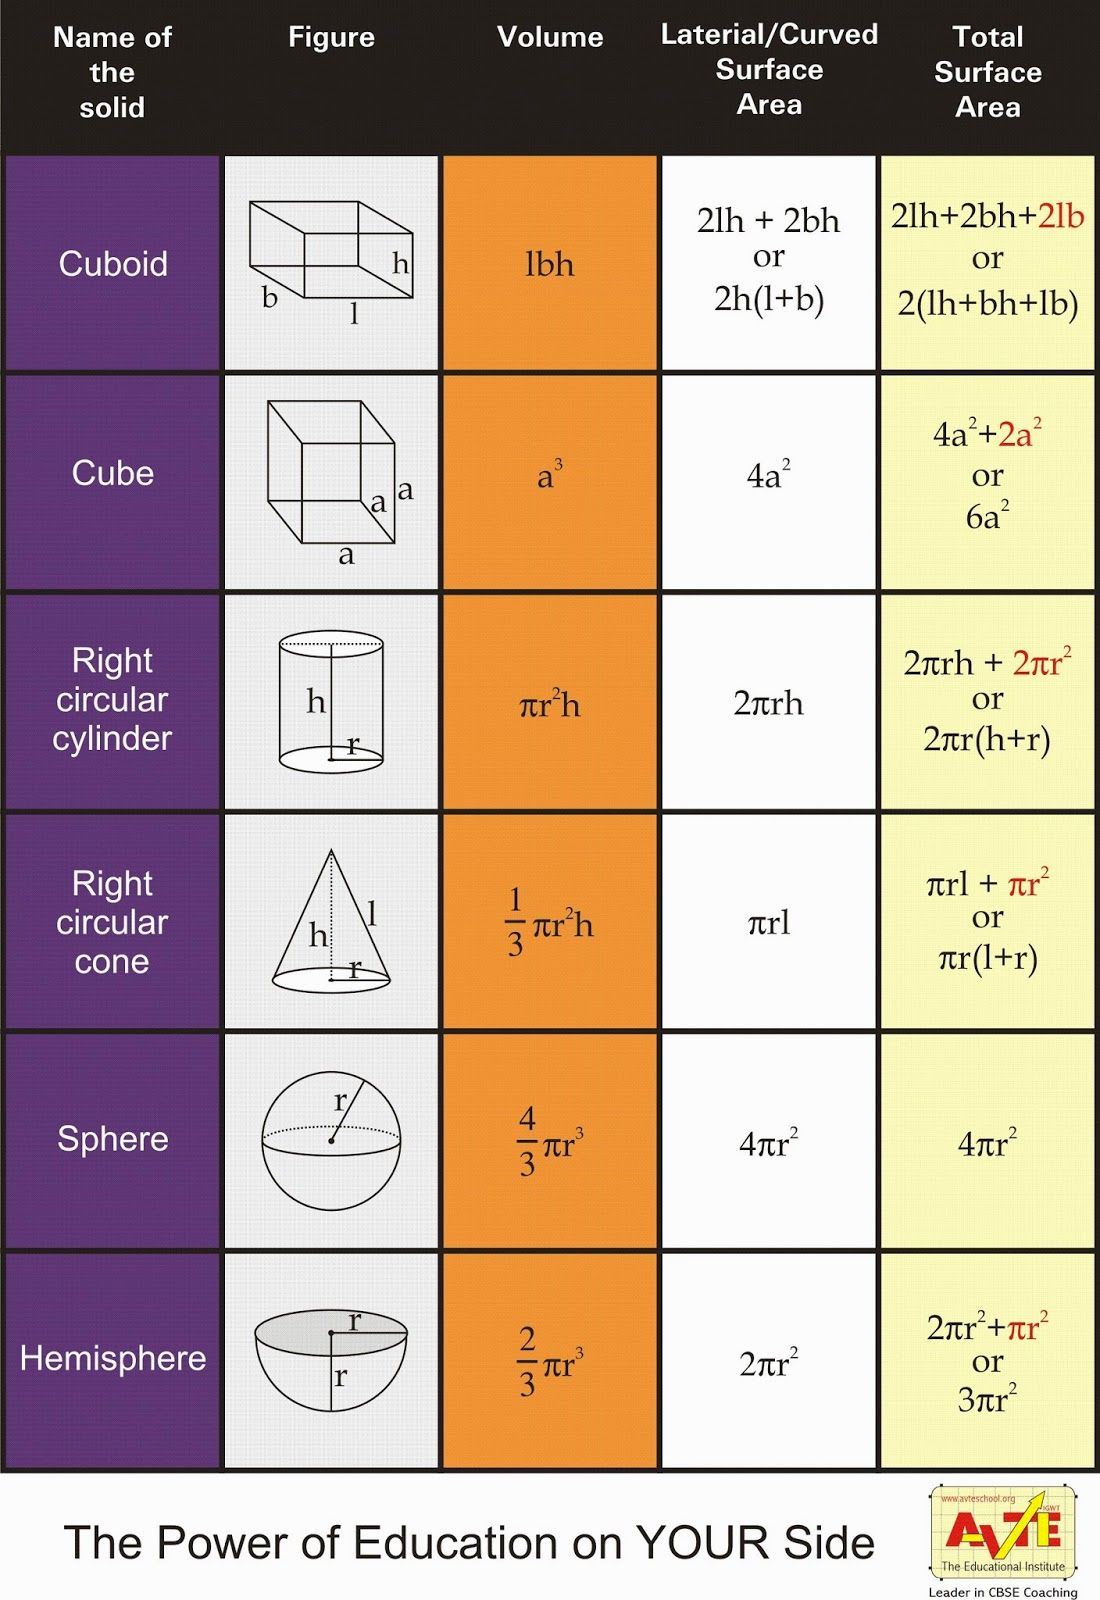 Maths all formulas of volume and surface area solid figures for class viviiviiiixxxi xii also rh pinterest